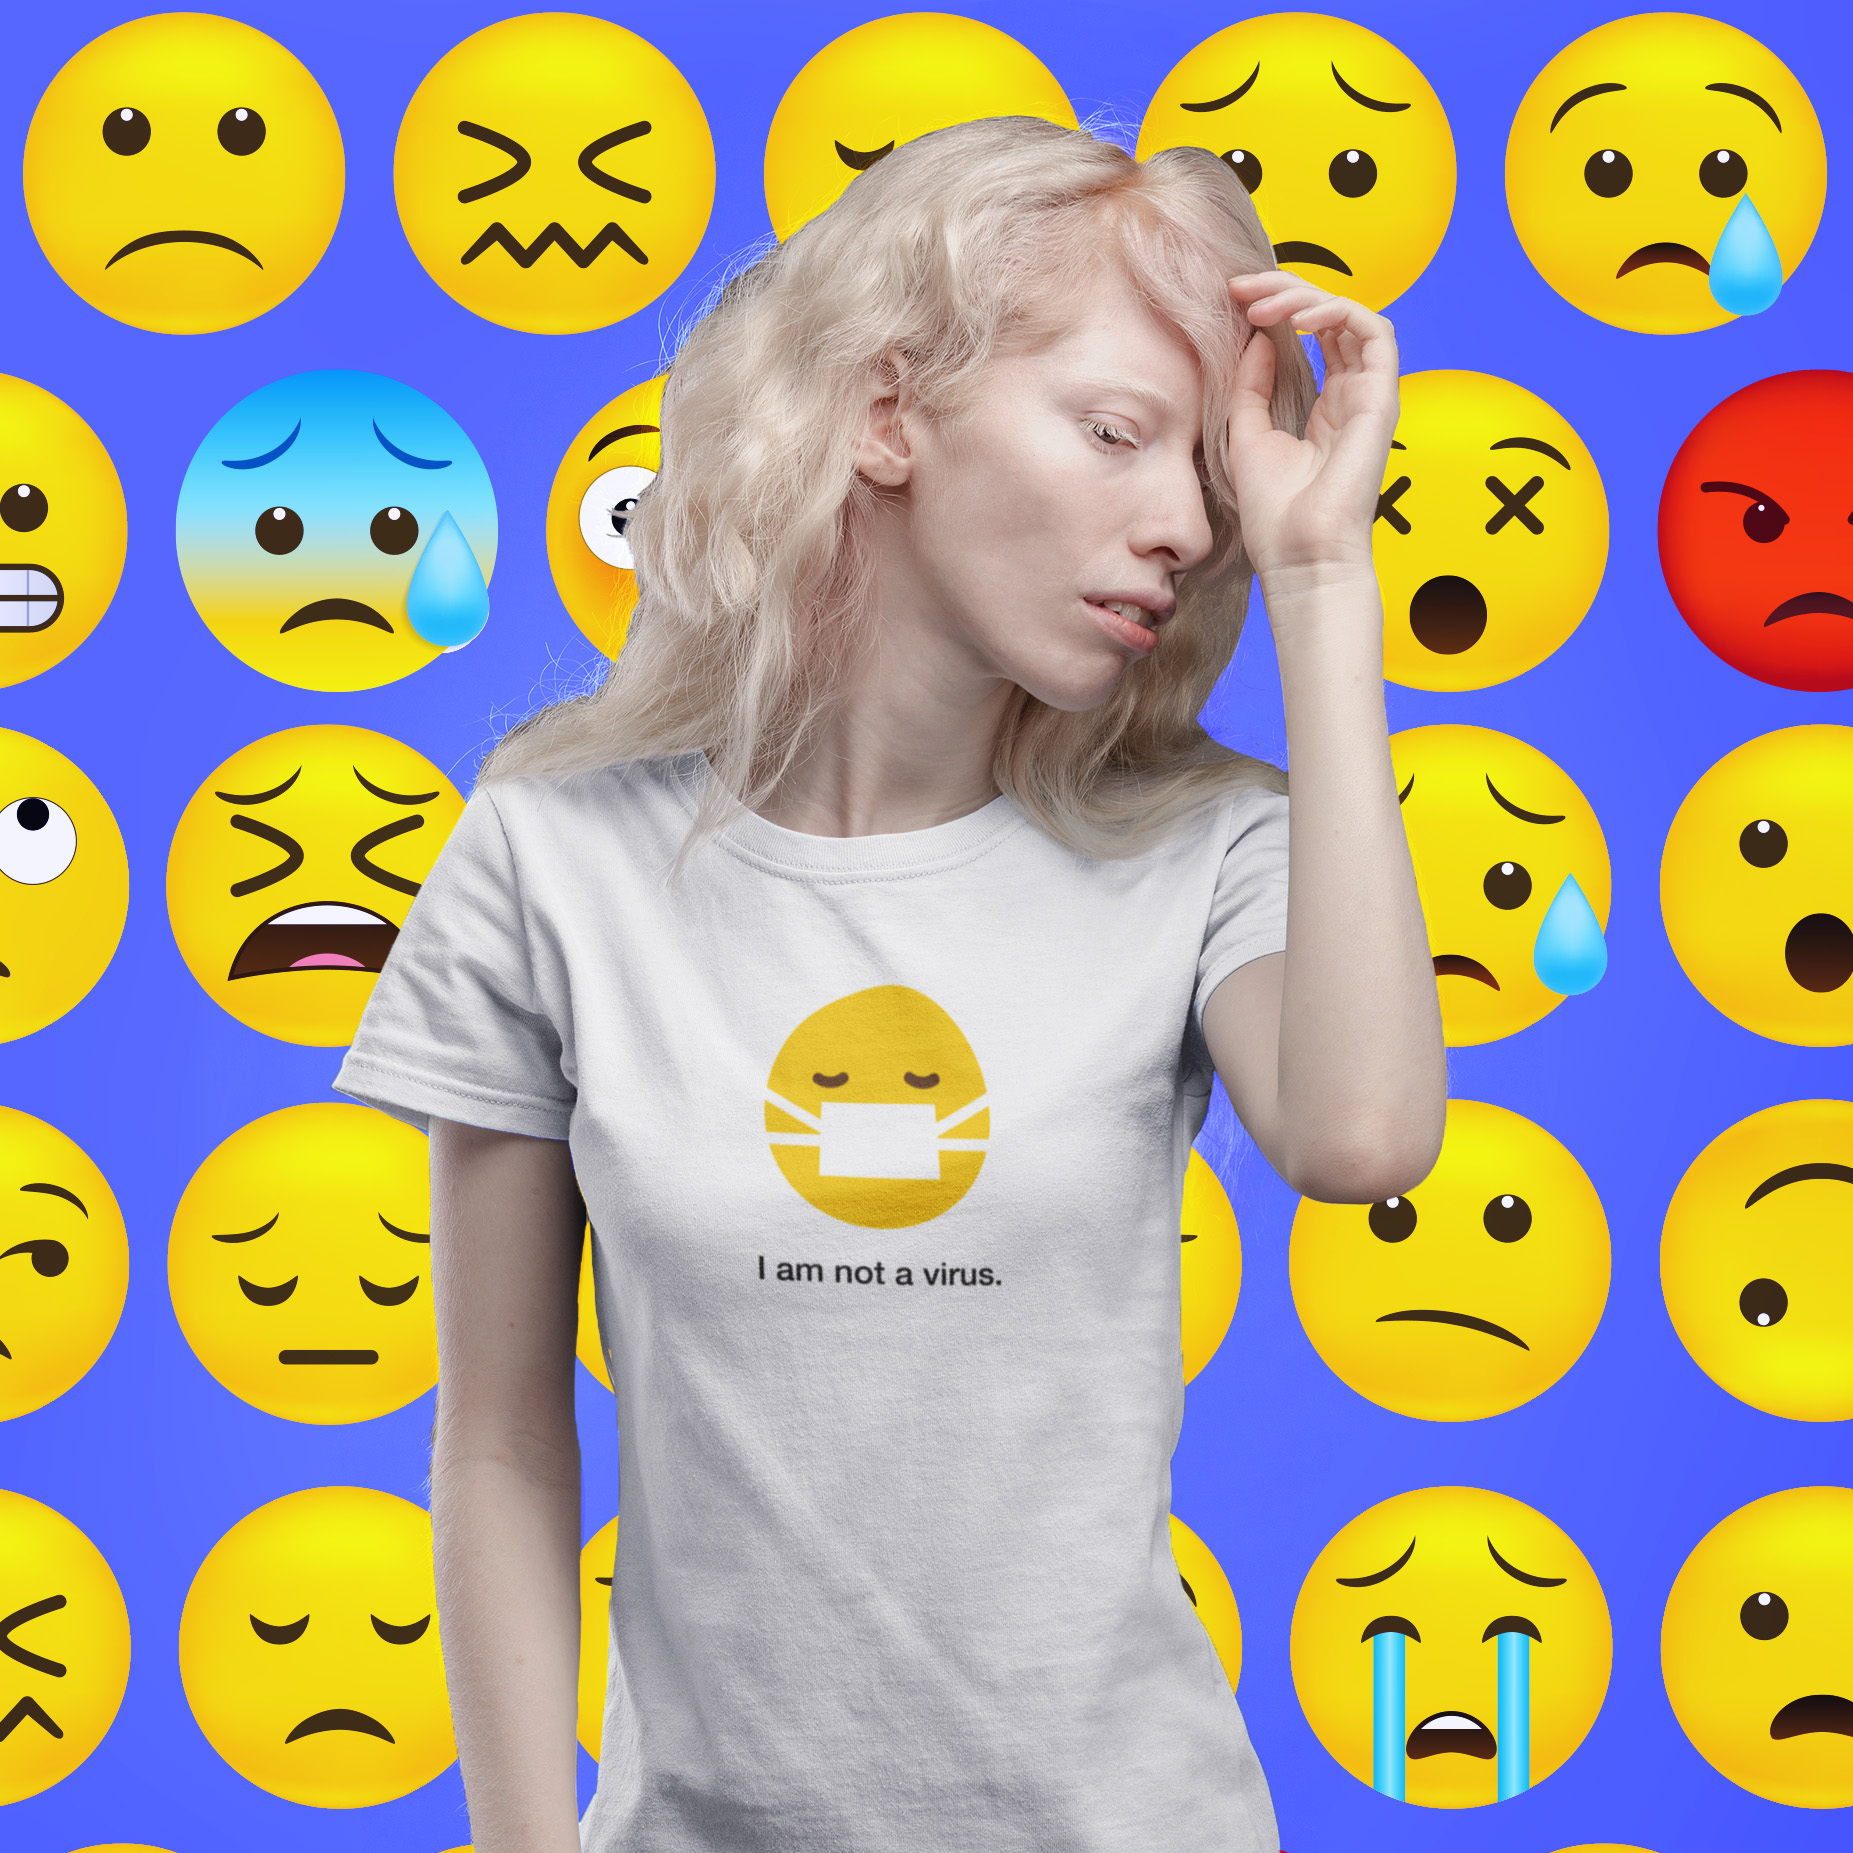 I am not a virus emoji t-shirt on designhero.shop